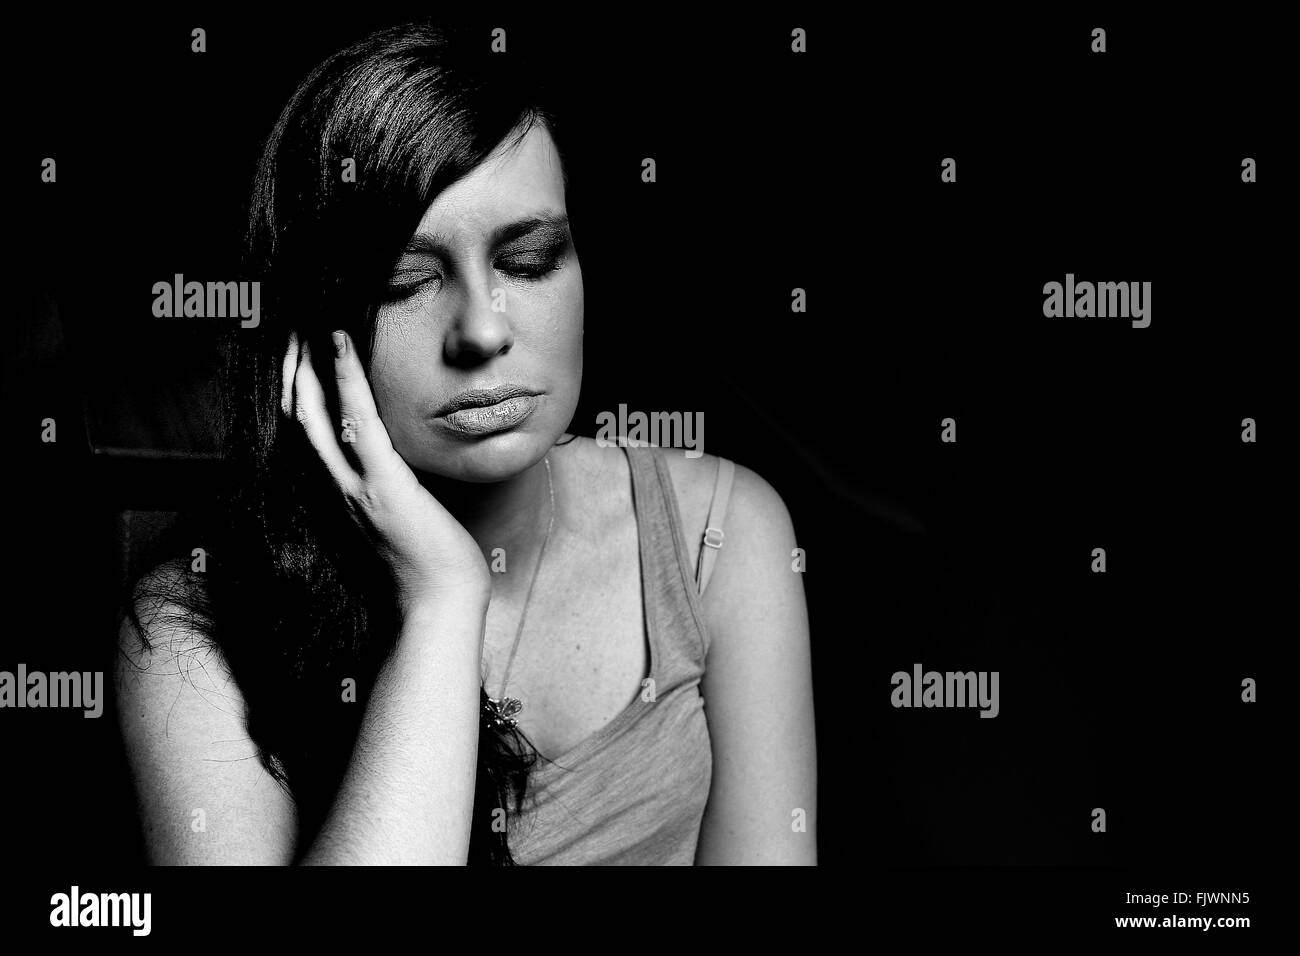 Young Woman With Eyes Closed Against Black Background - Stock Image